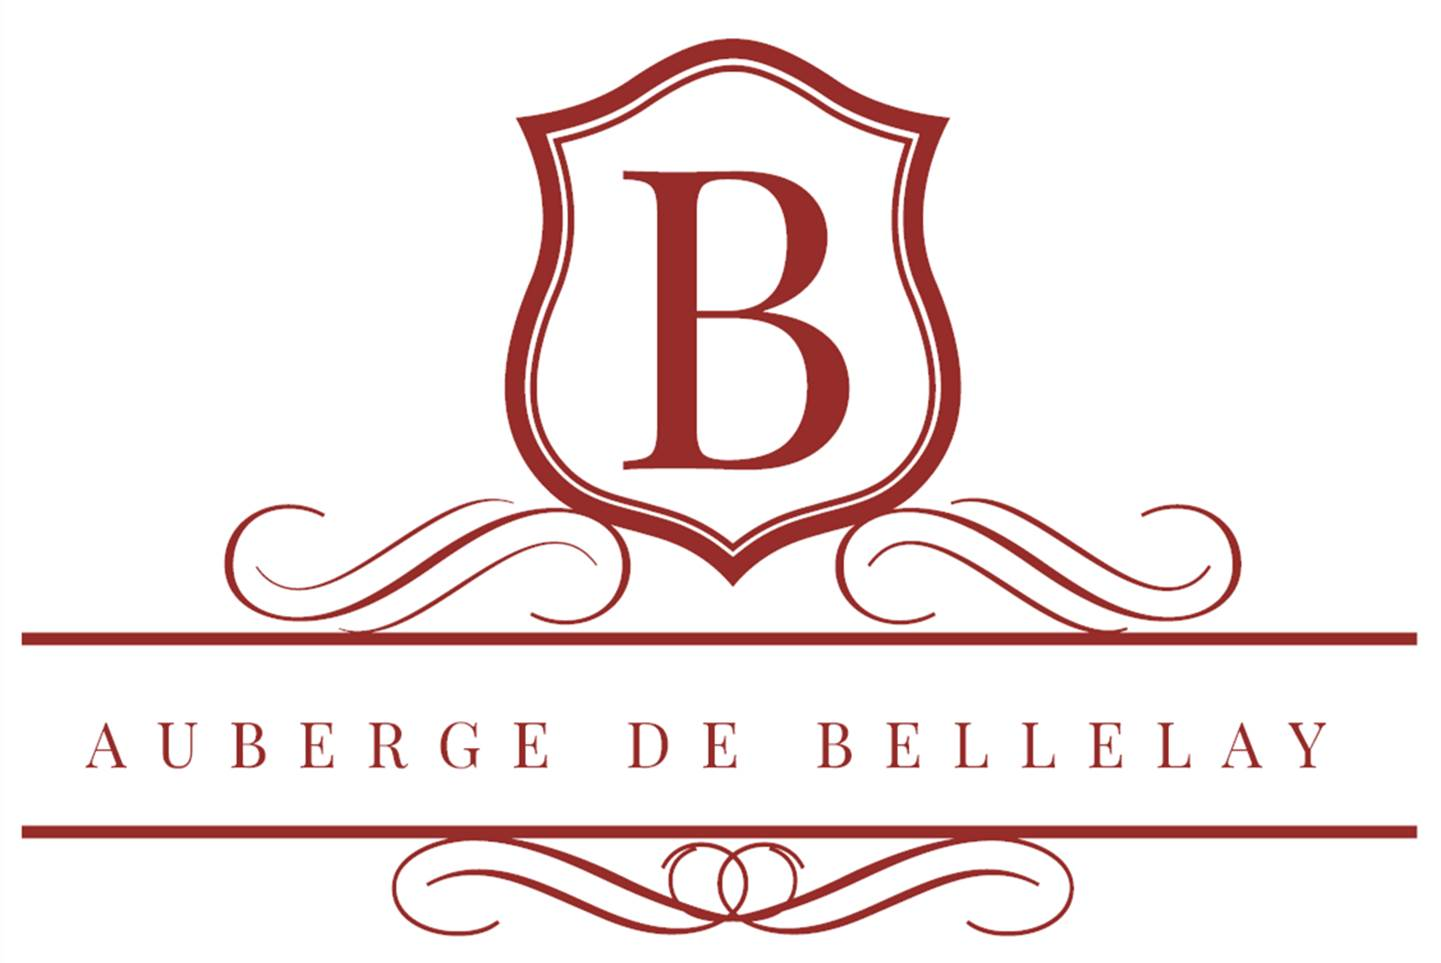 Auberge de Bellelay